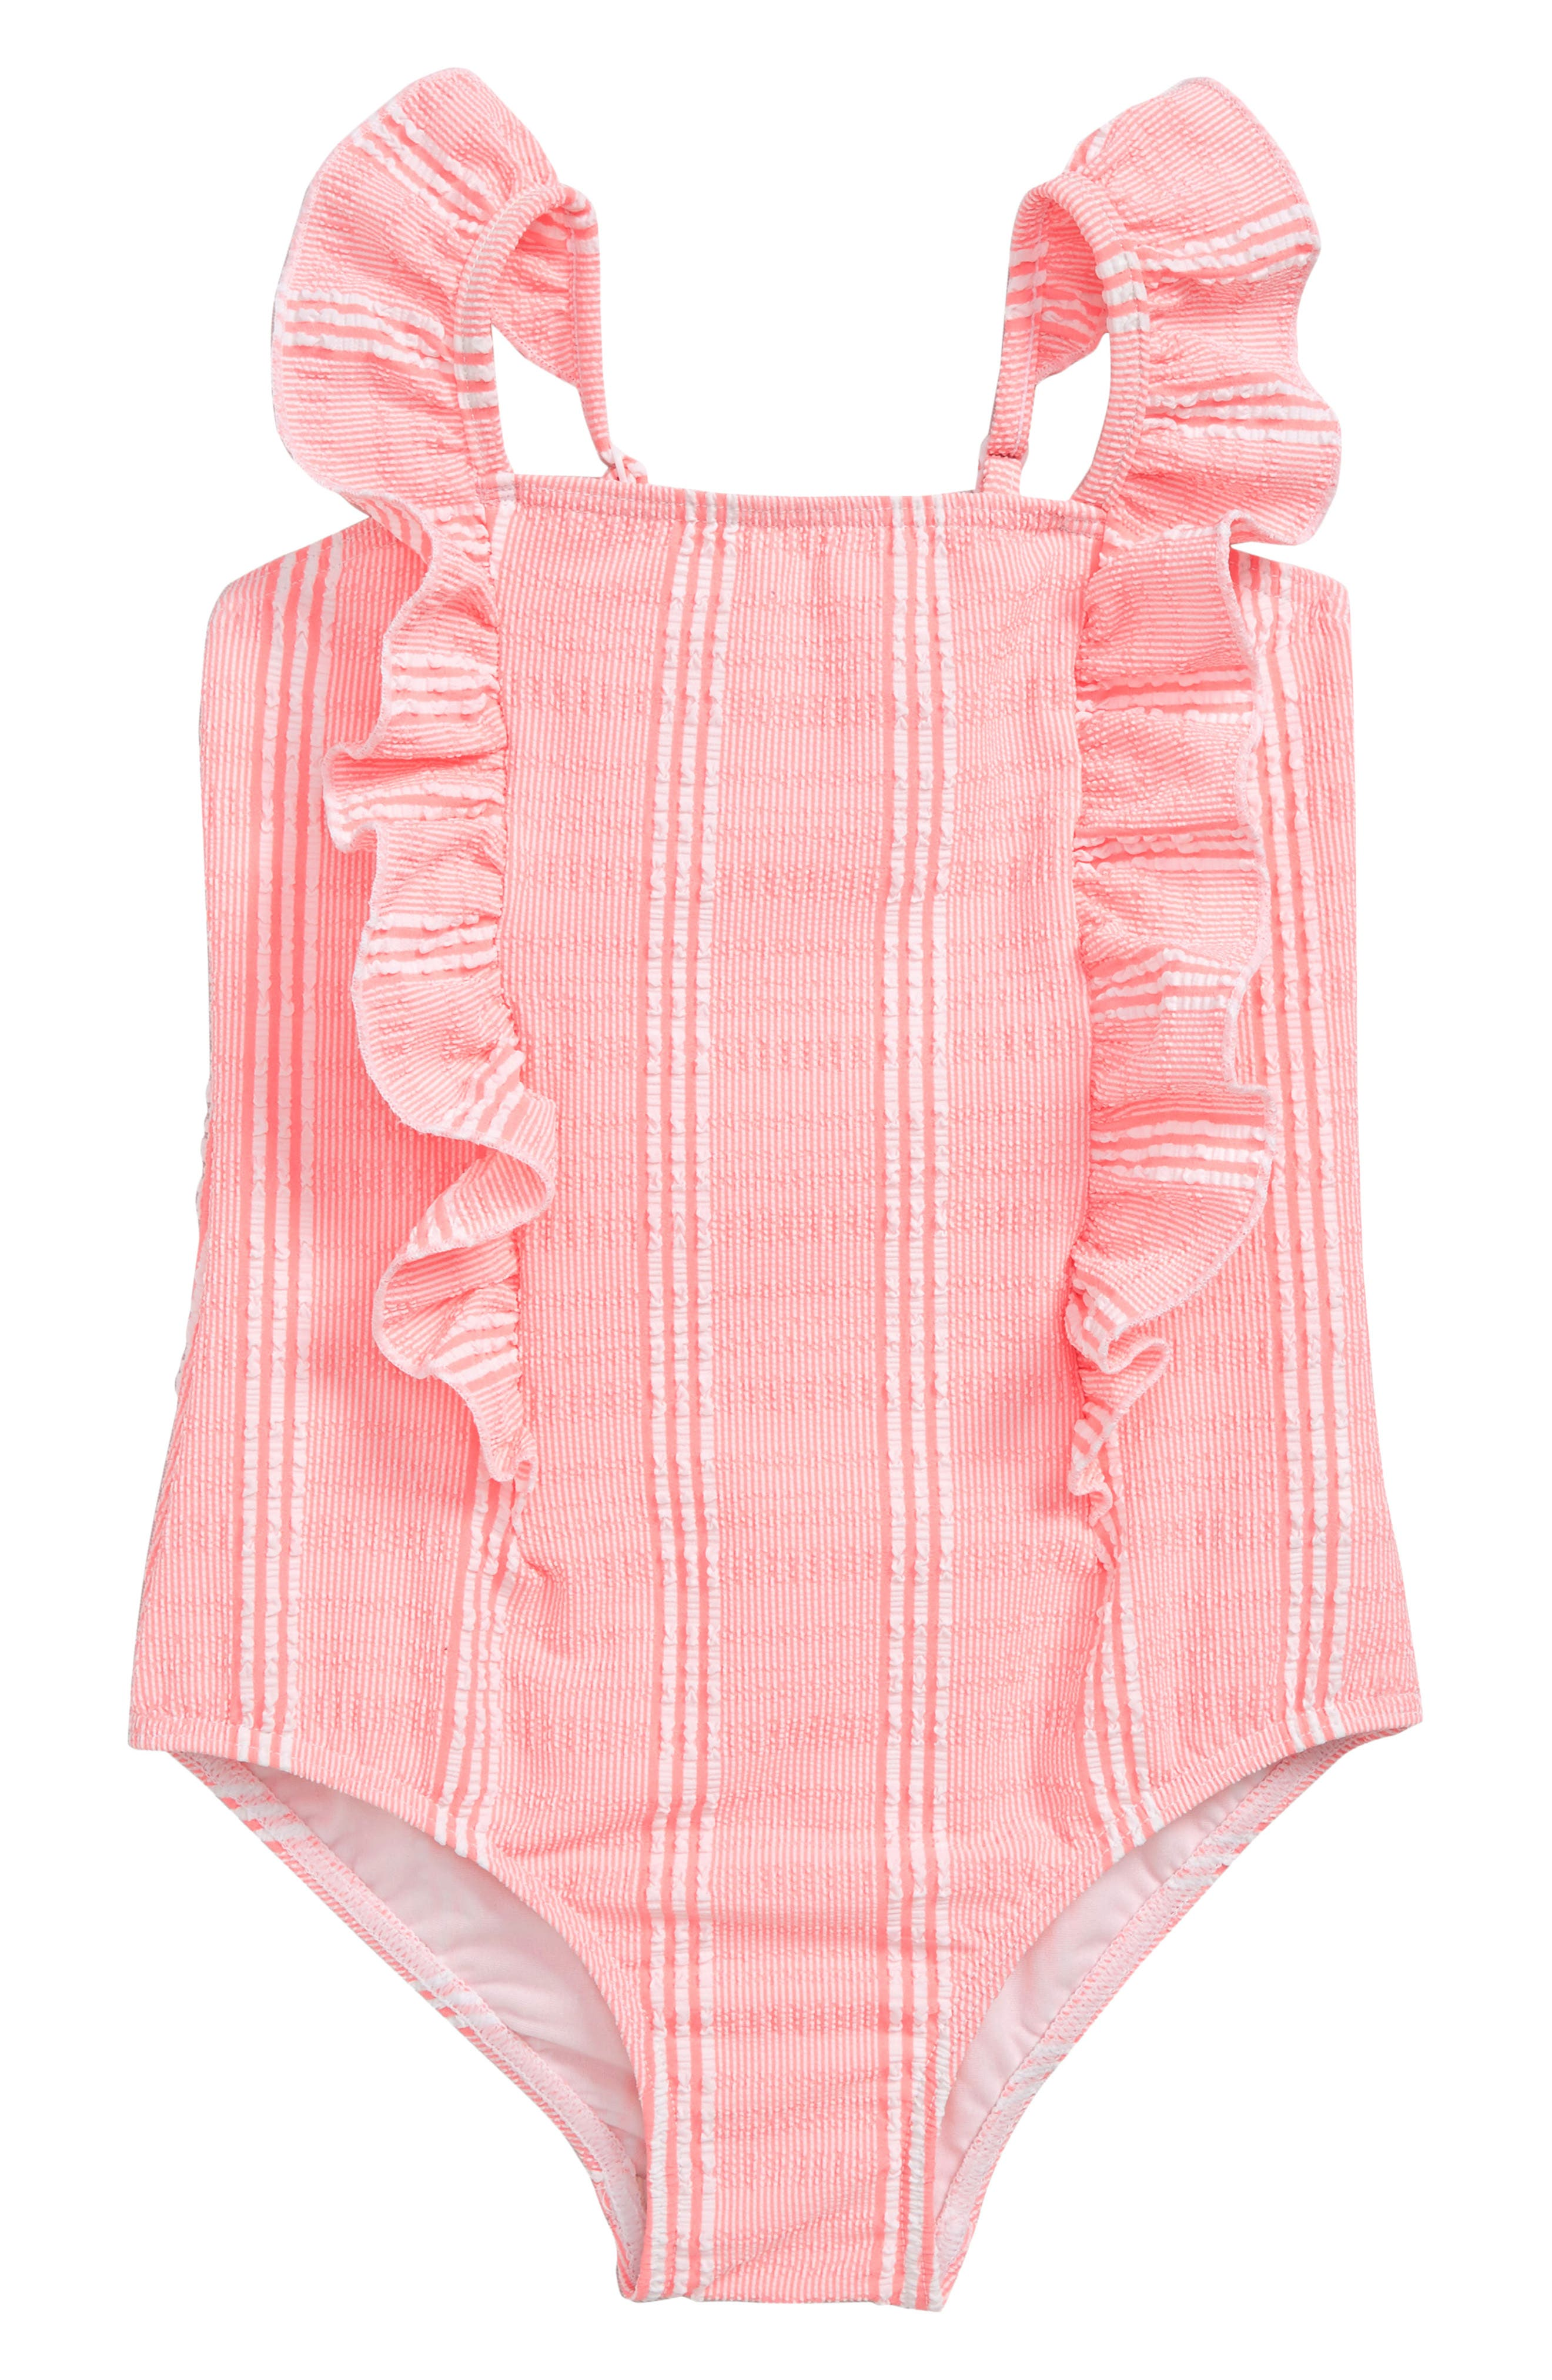 Bohemian Stripe One-Piece Swimsuit,                             Main thumbnail 1, color,                             BLOSSOM PINK